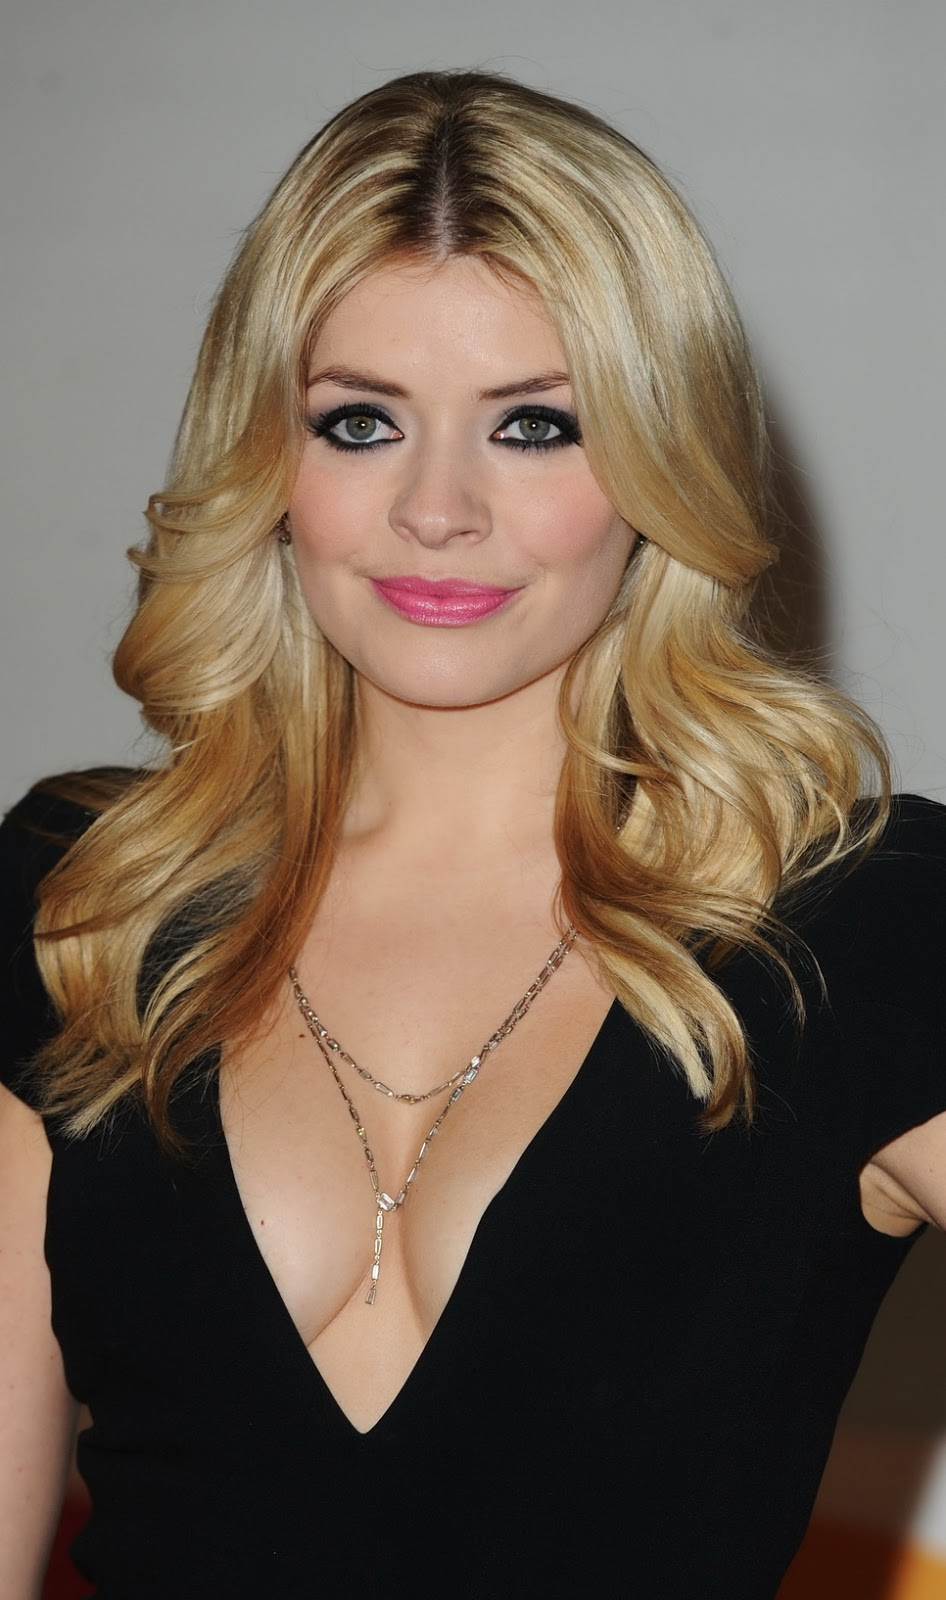 Nude Photos Of Holly Willoughby